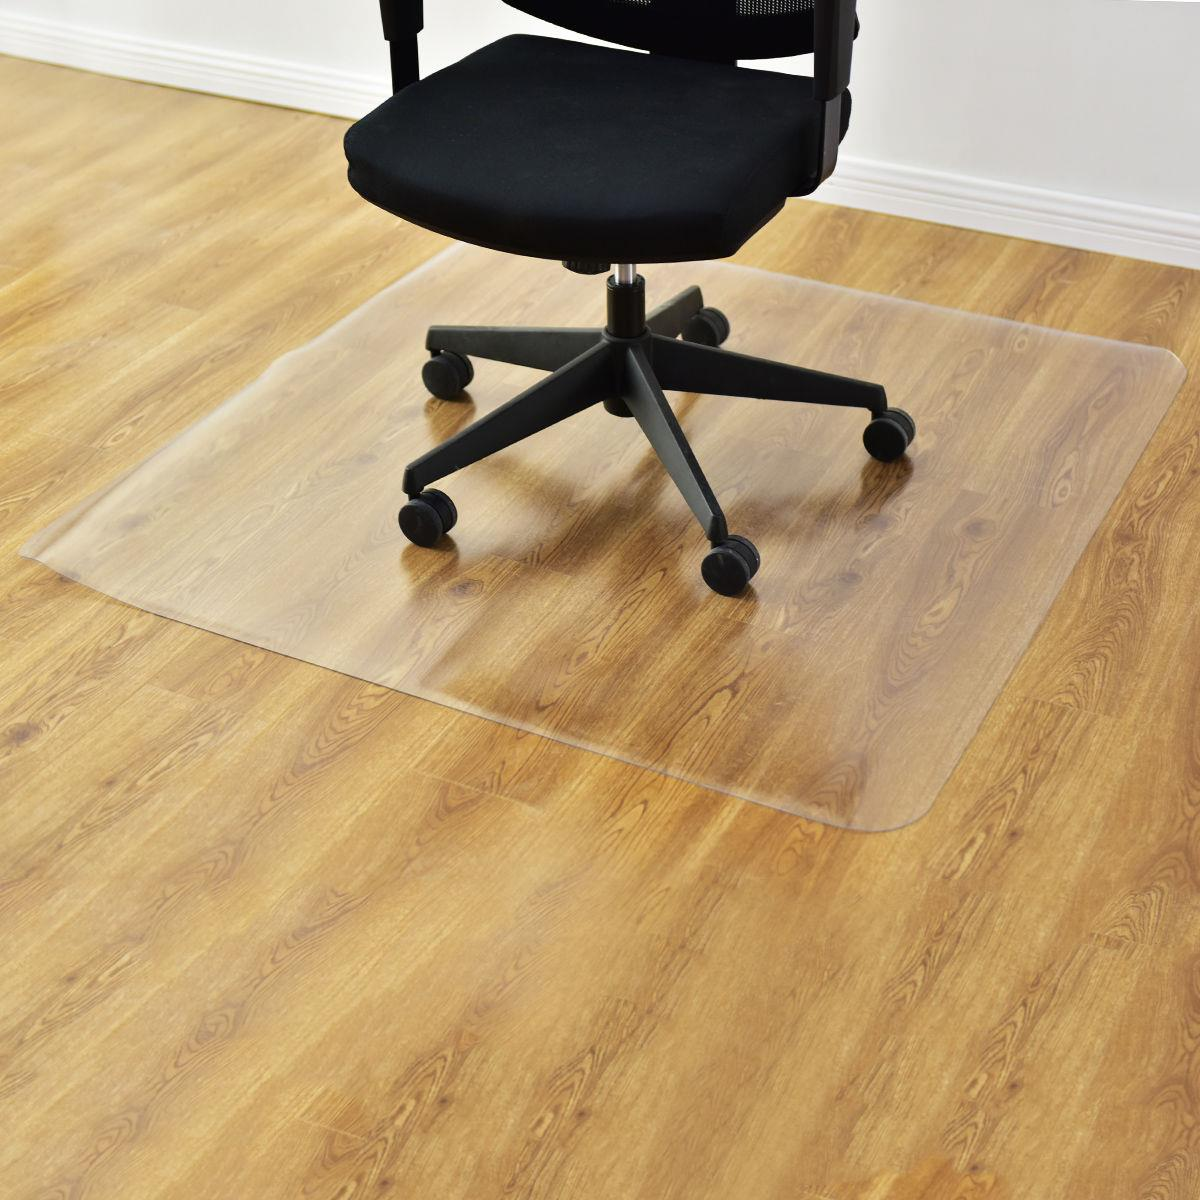 36 X48 Hard Wood Floor Home Office Pvc Floor Mat Square Office Rolling Chair 651519253342 Ebay